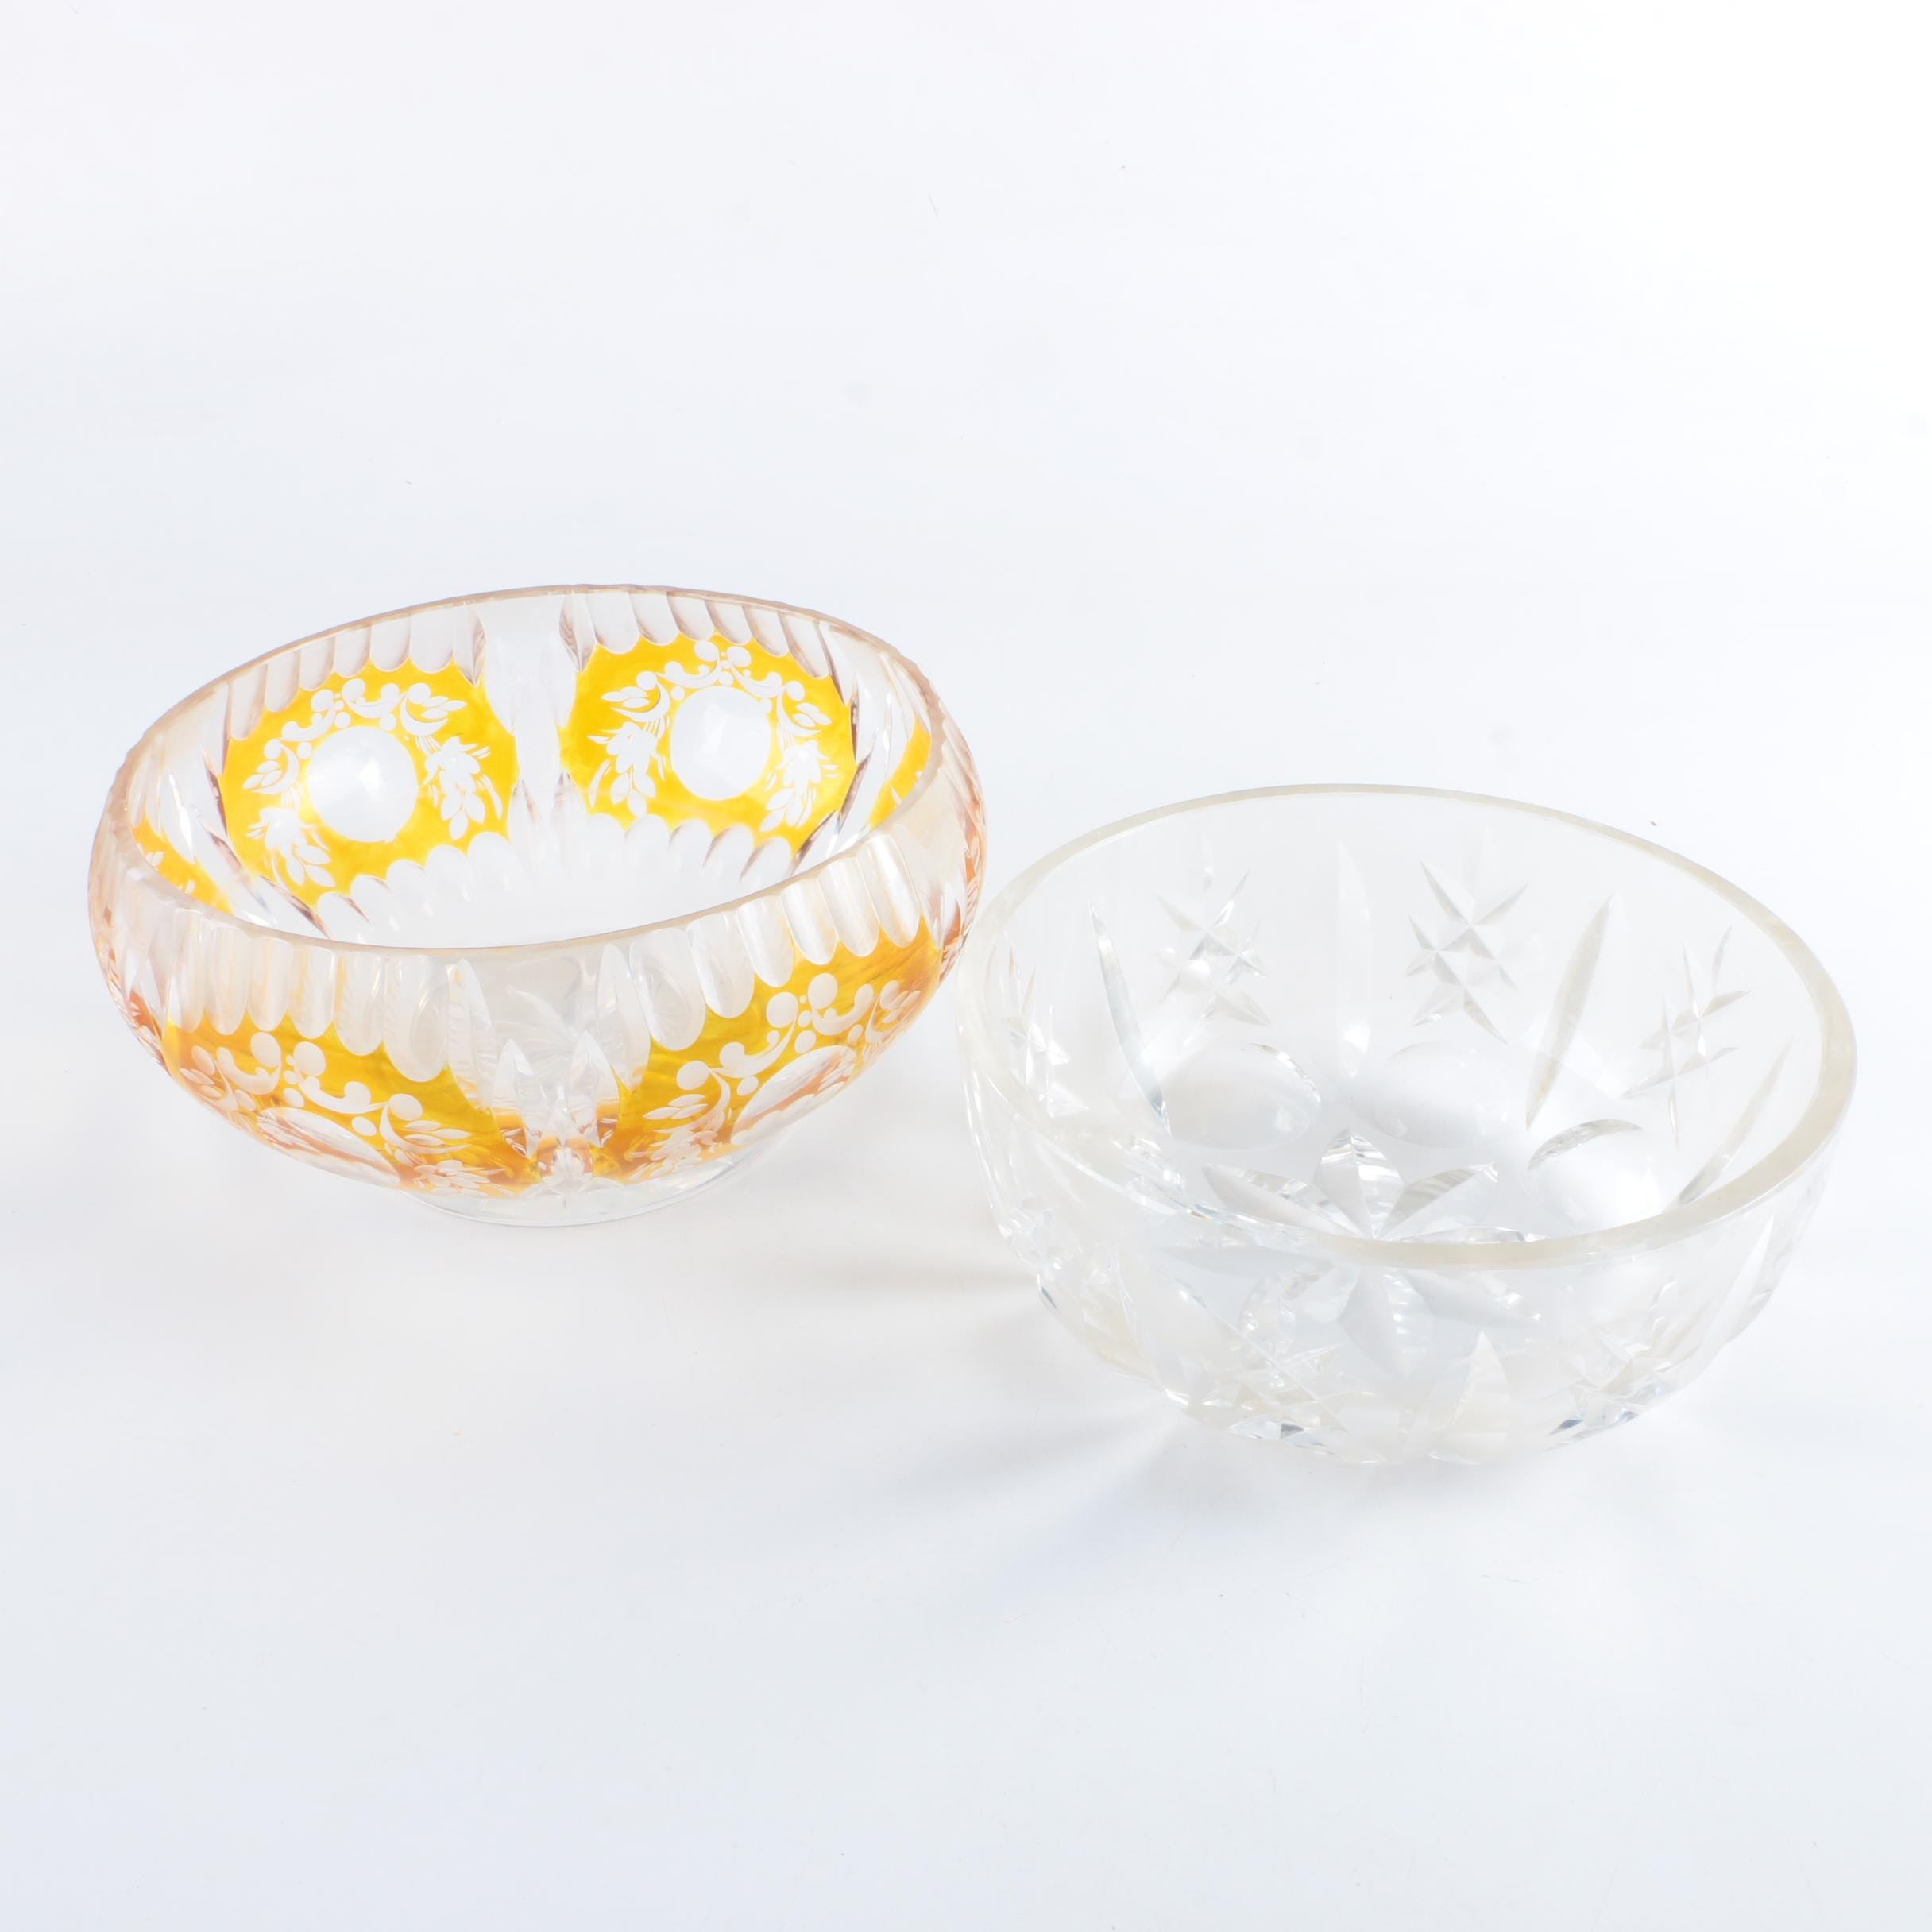 Bohemian Style Amber Cut to Clear with Glass Bowls